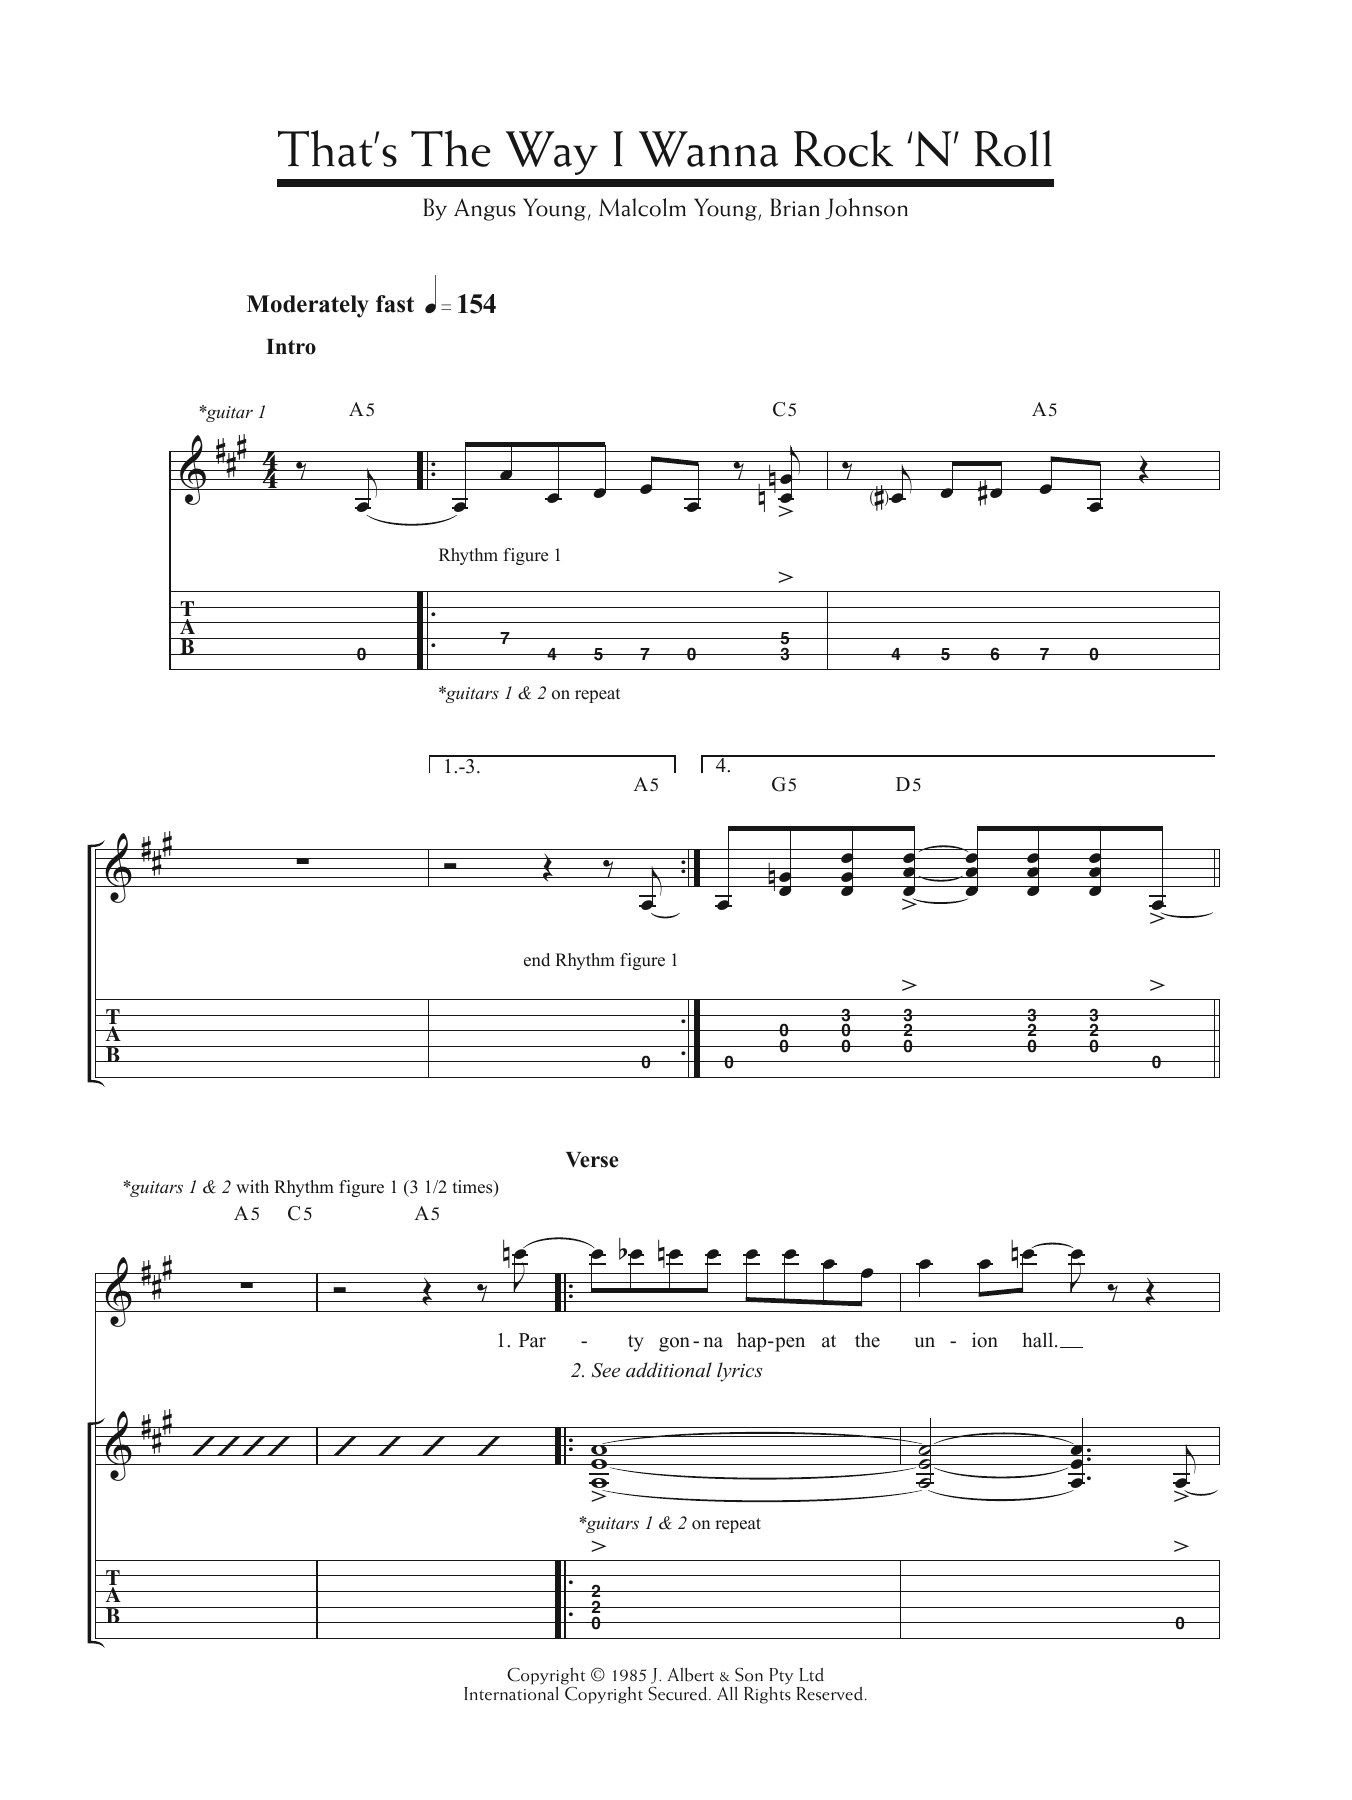 That's The Way I Wanna Rock 'n' Roll Sheet Music